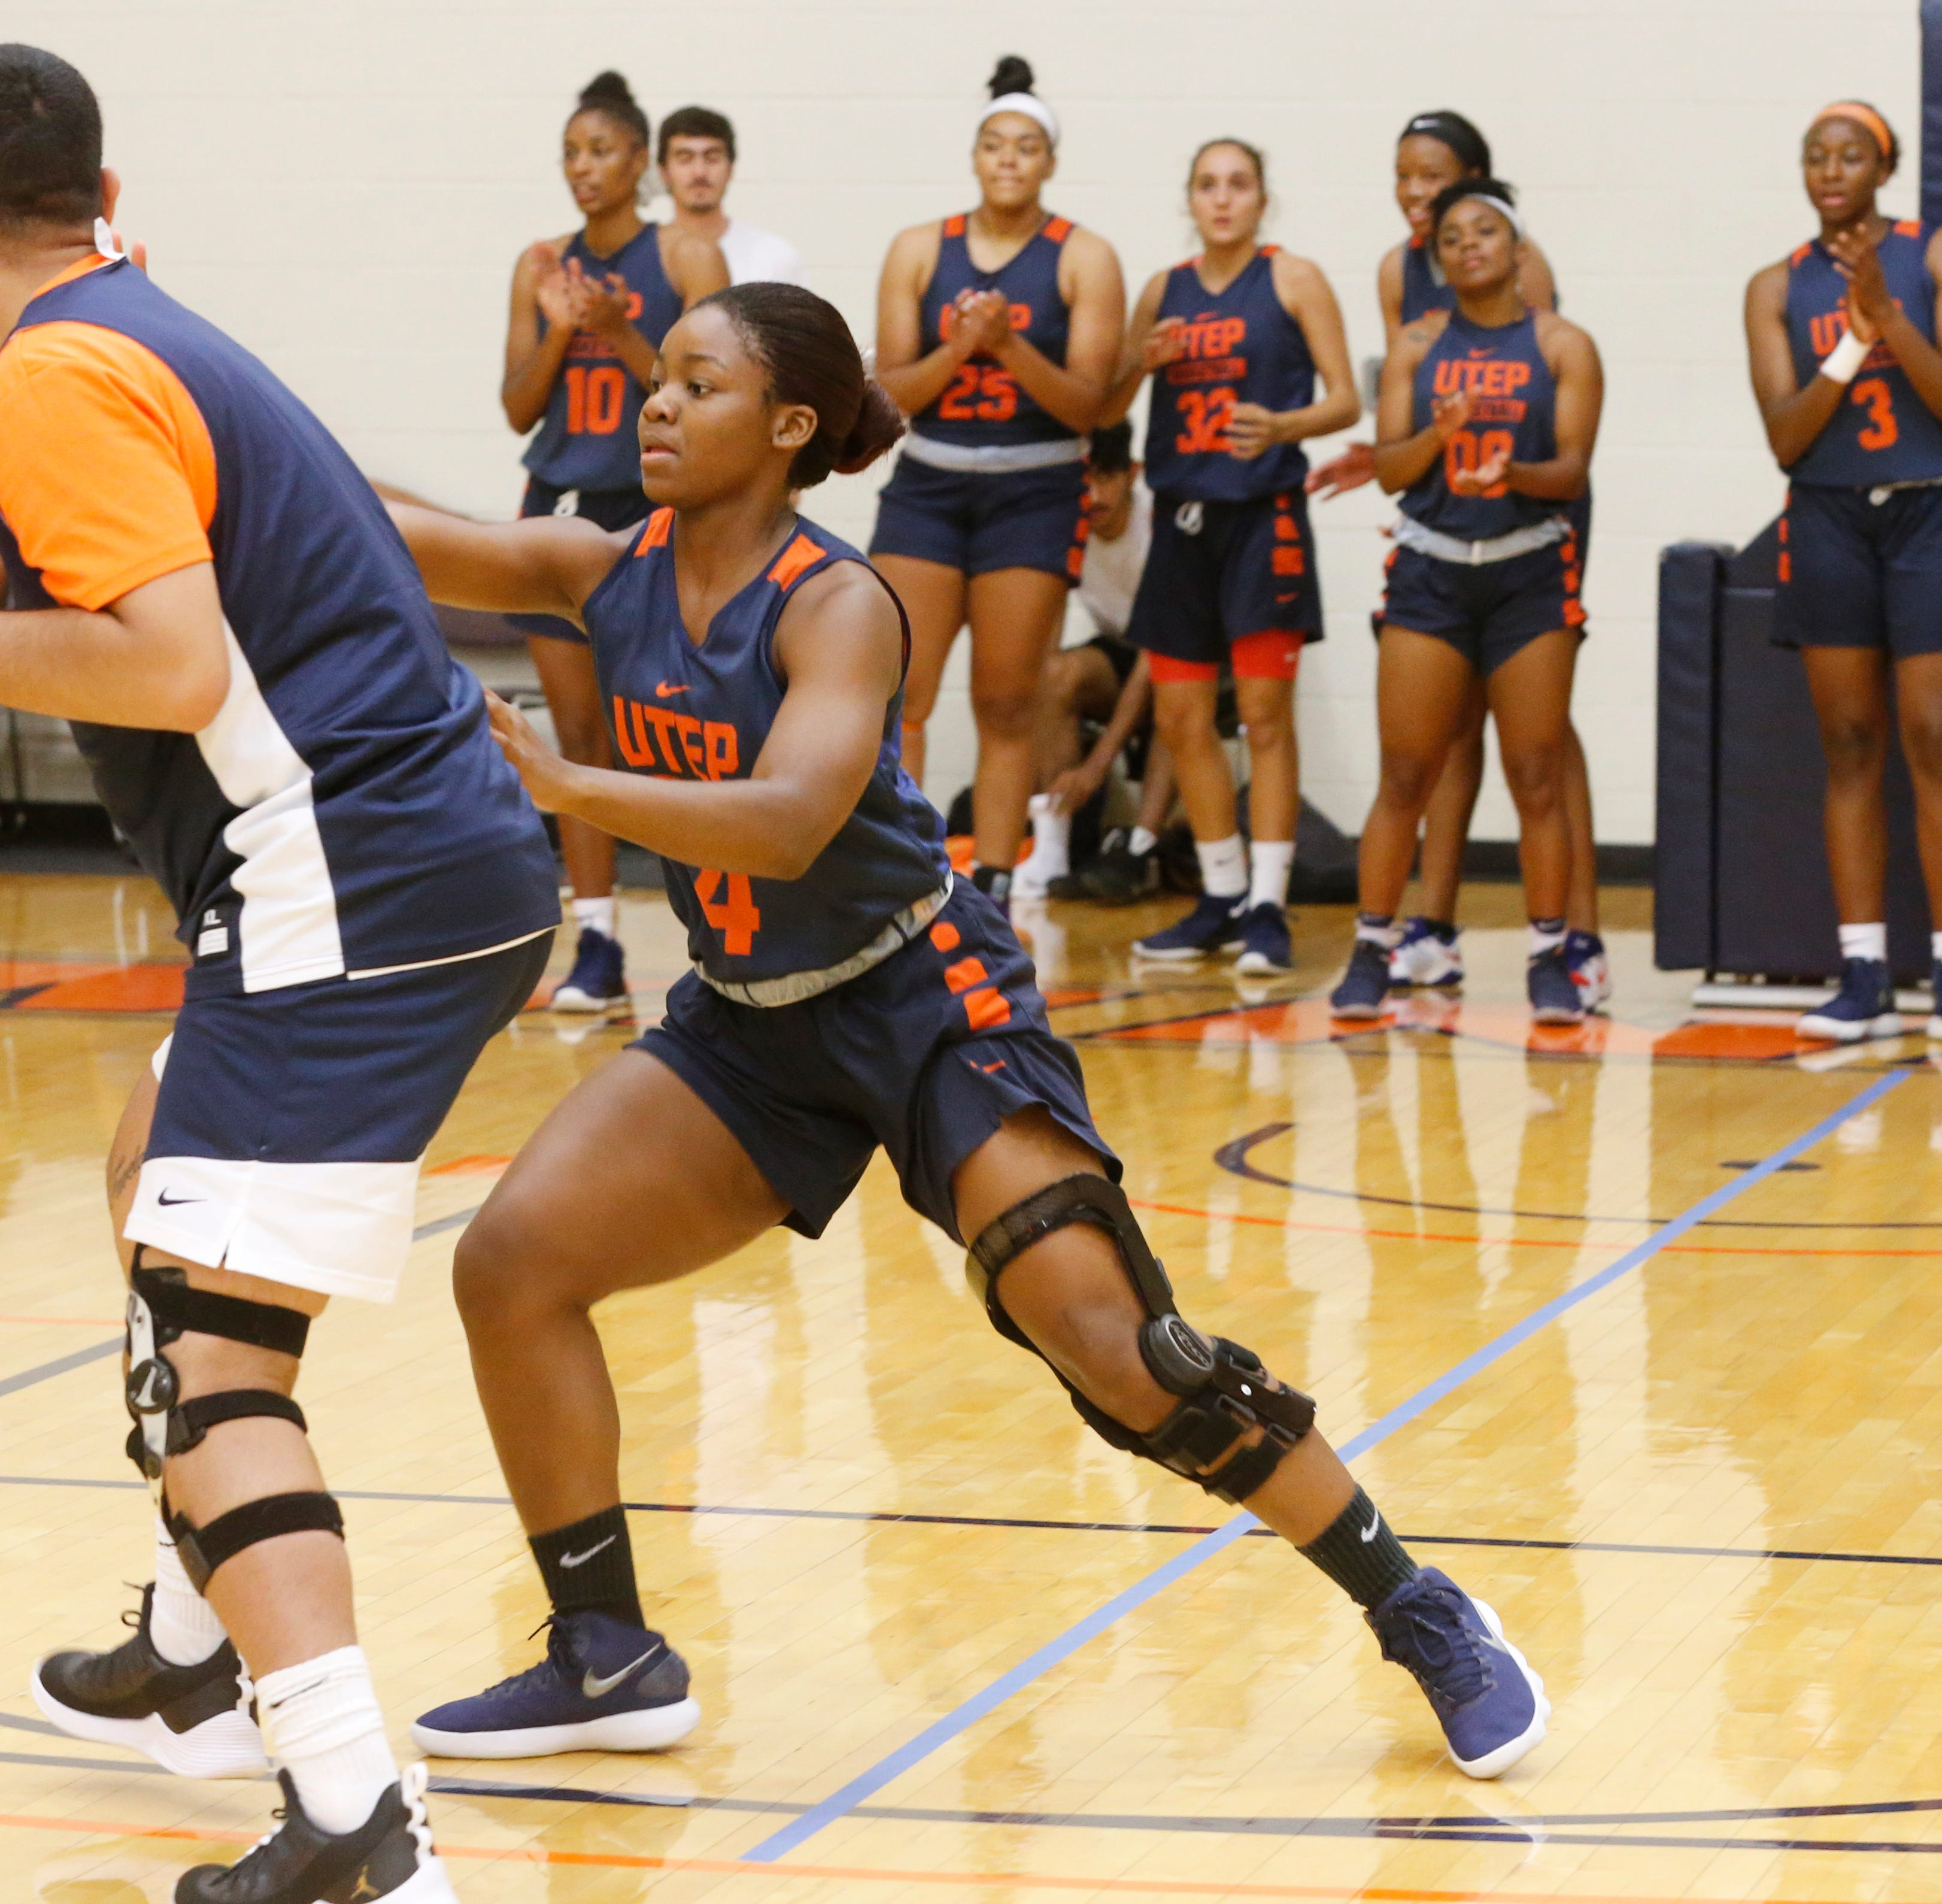 Approaching season signals end of year out for two UTEP women's basketball 'newcomers'